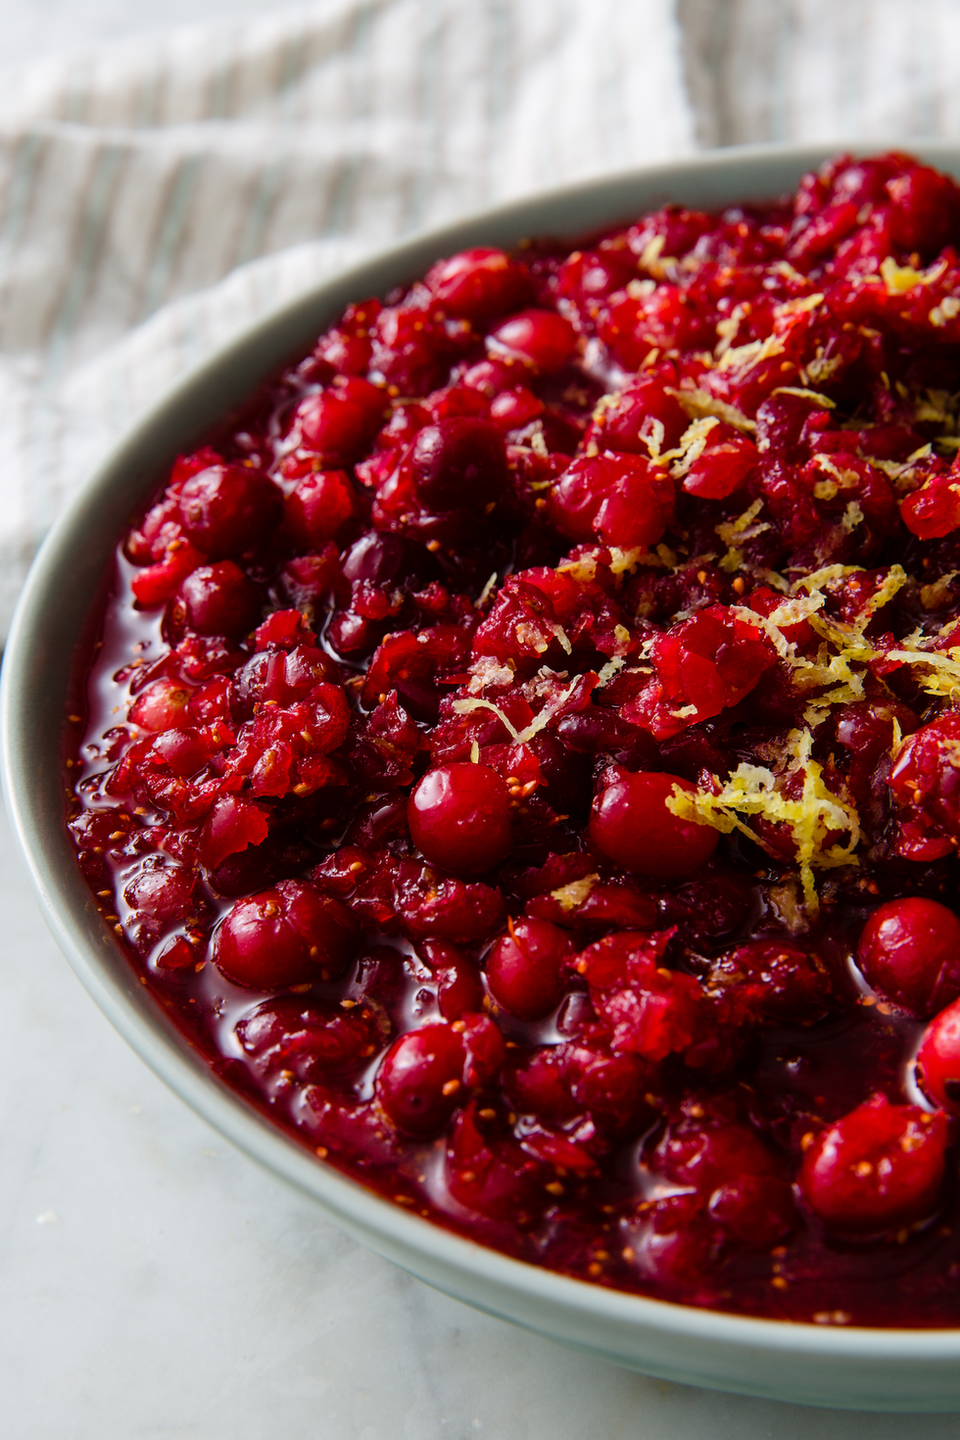 """<p>Cranberry relish is a good alternative to cranberry sauce on Thanksgiving because it can be made entirely in a food processor, which means it doesn't require the all too precious stovetop space. </p><p><strong><em>Get the recipe at <a href=""""https://www.delish.com/cooking/recipe-ideas/a22553444/homemade-fresh-cranberry-relish-recipe/"""" rel=""""nofollow noopener"""" target=""""_blank"""" data-ylk=""""slk:Delish"""" class=""""link rapid-noclick-resp"""">Delish</a>. </em></strong><br></p>"""